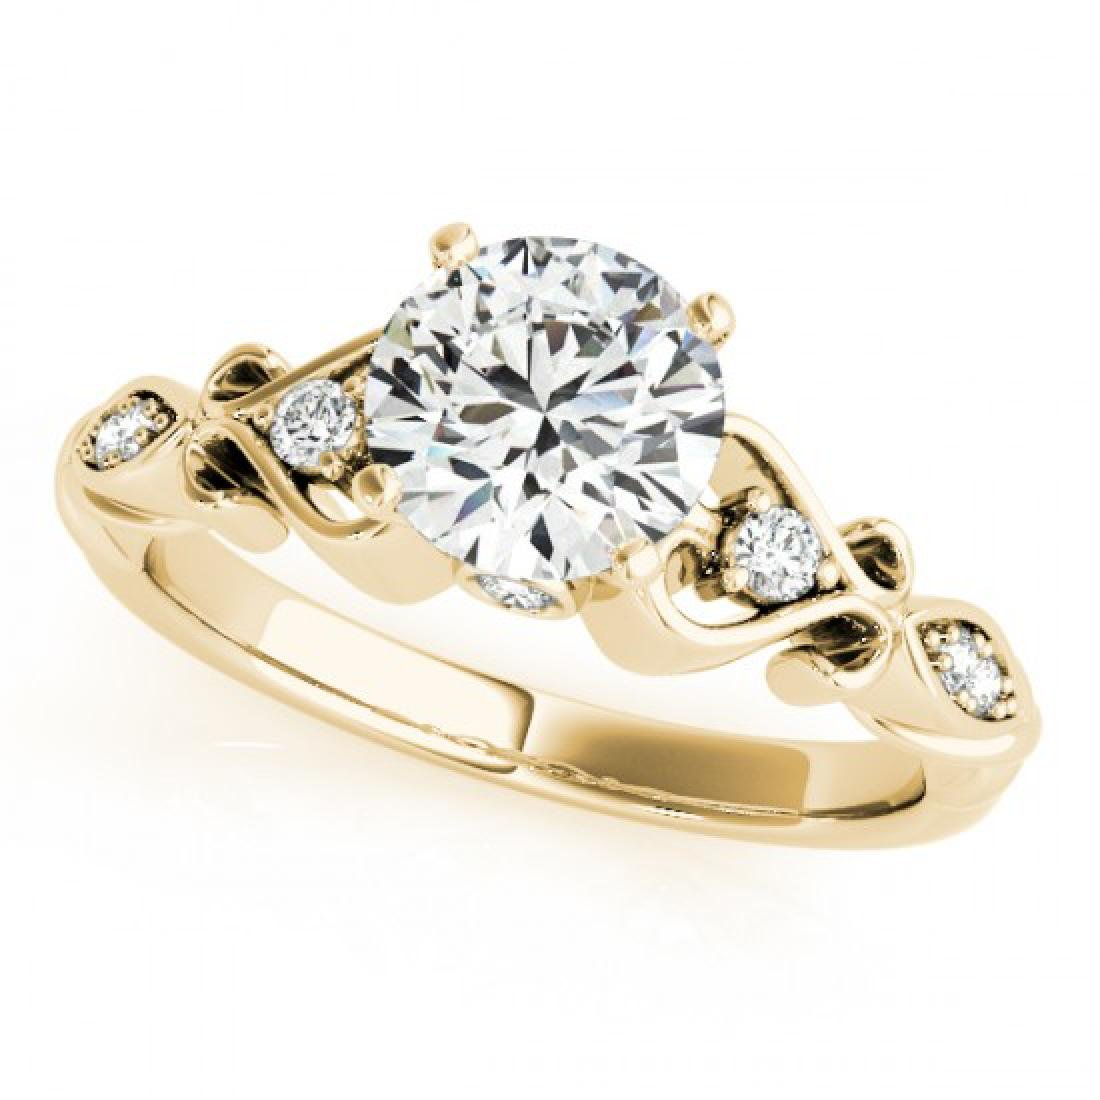 1.15 CTW Certified VS/SI Diamond Solitaire Antique Ring